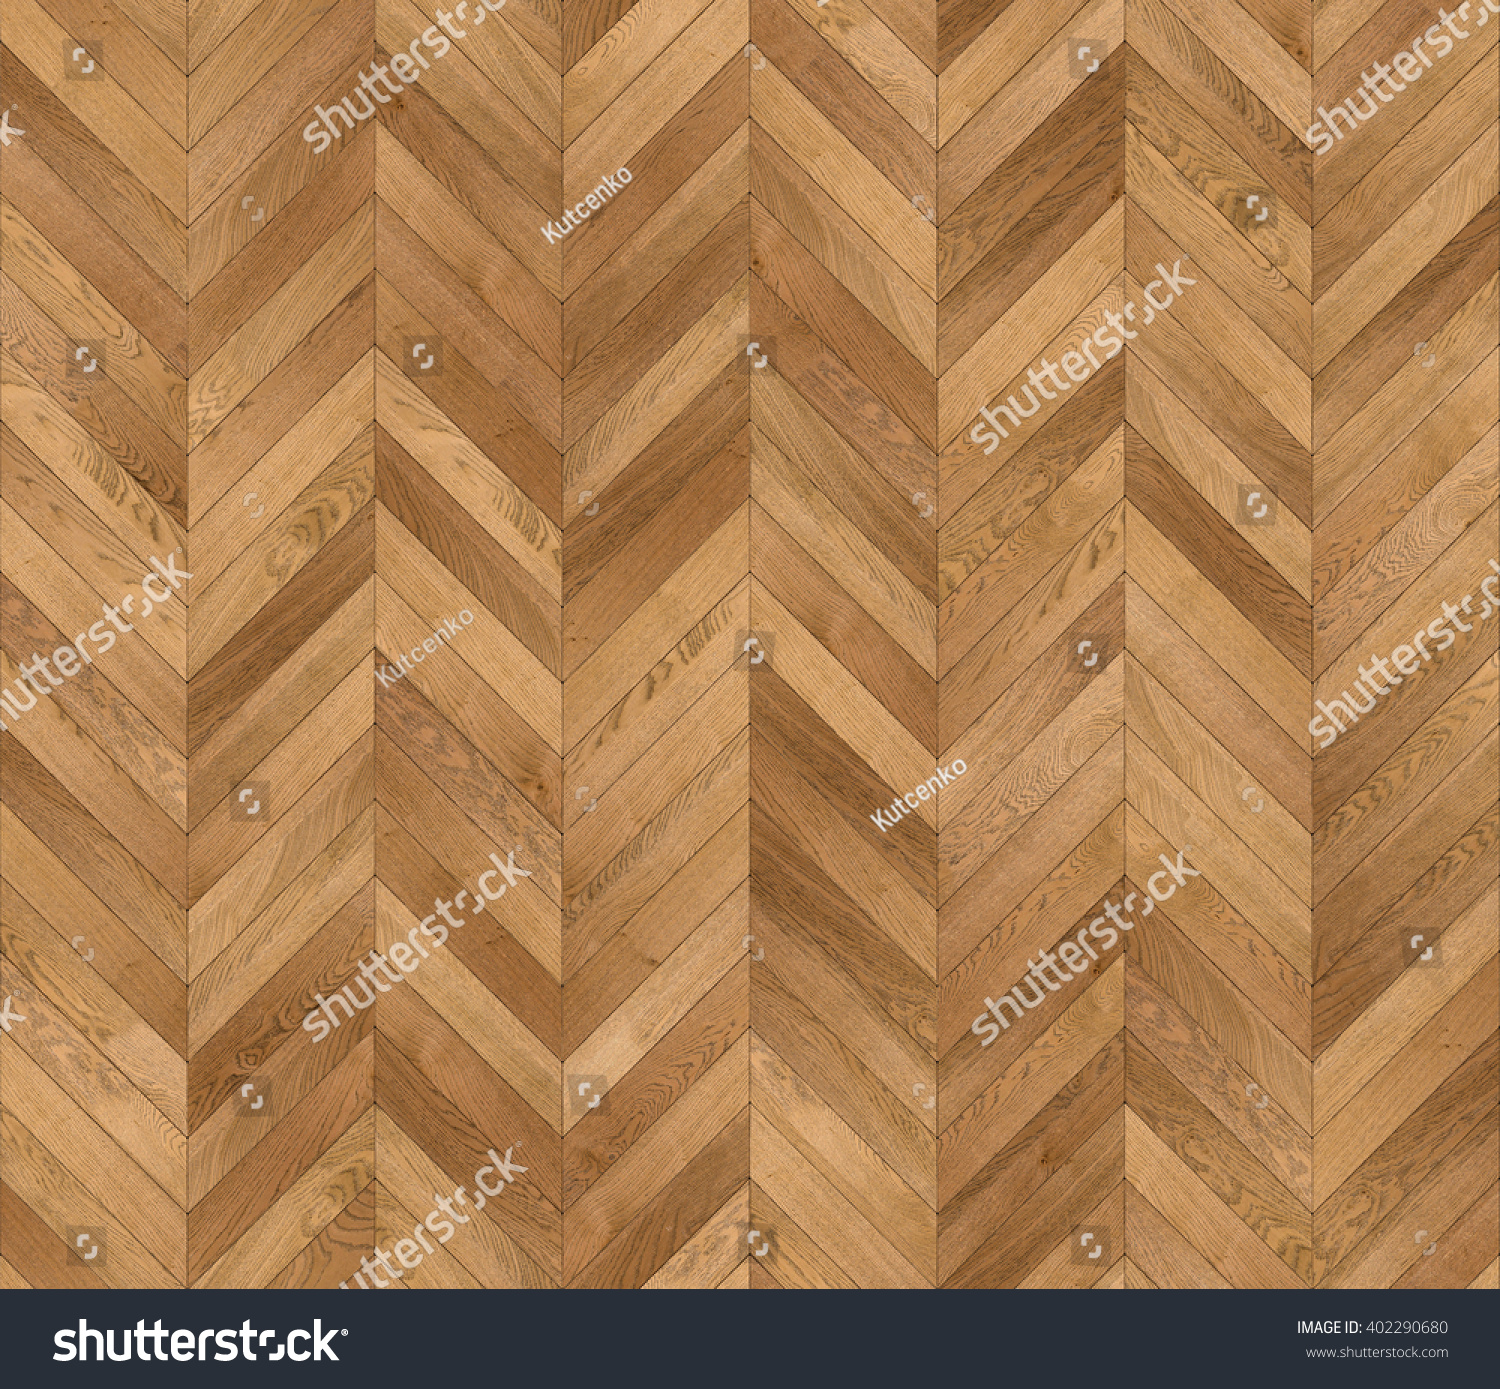 chevron natural parquet seamless floor texture stock photo 402290680 shutterstock. Black Bedroom Furniture Sets. Home Design Ideas